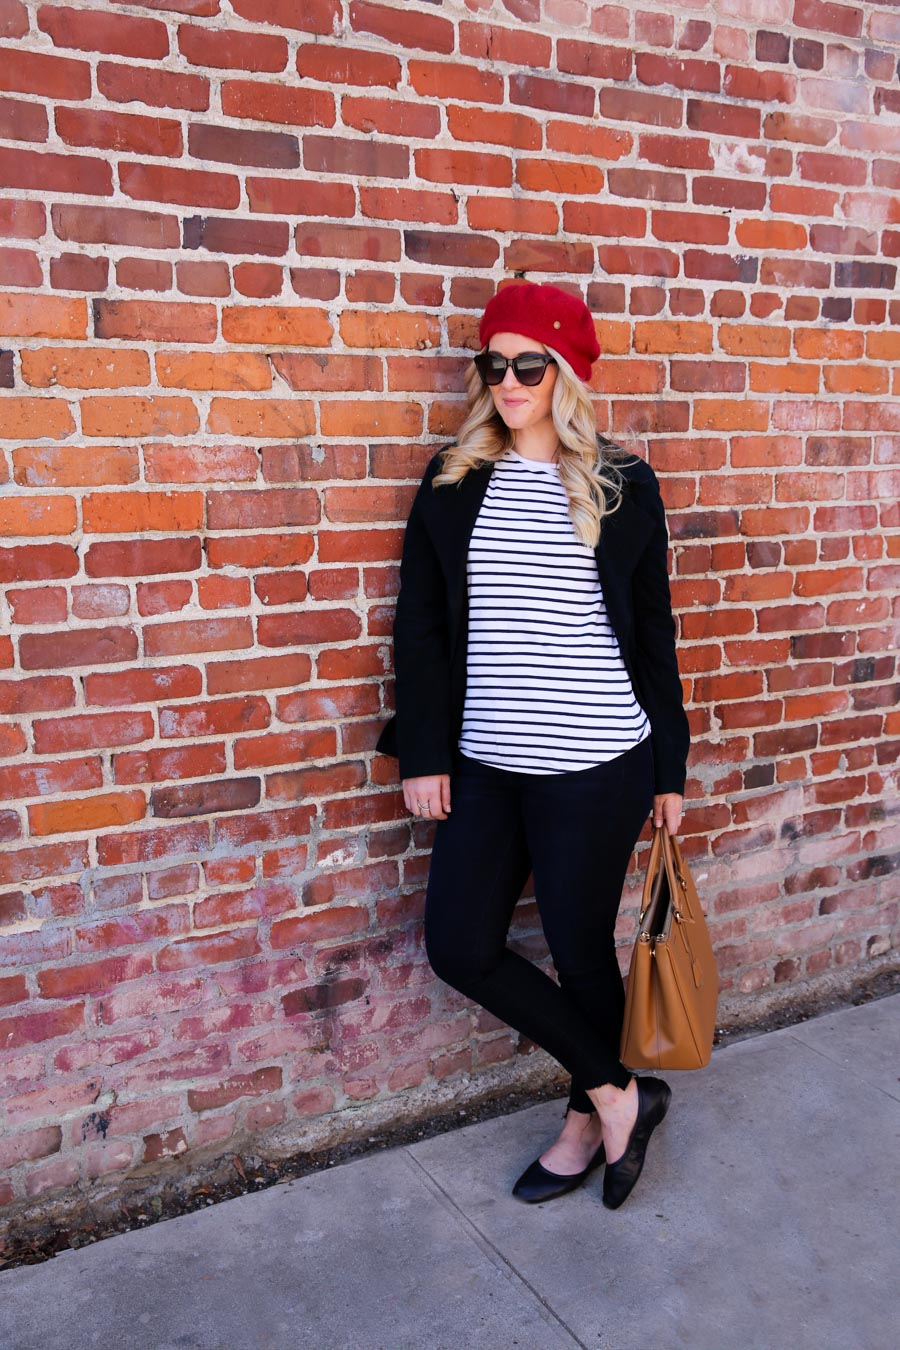 Red Beret Outfit with Striped Shirt